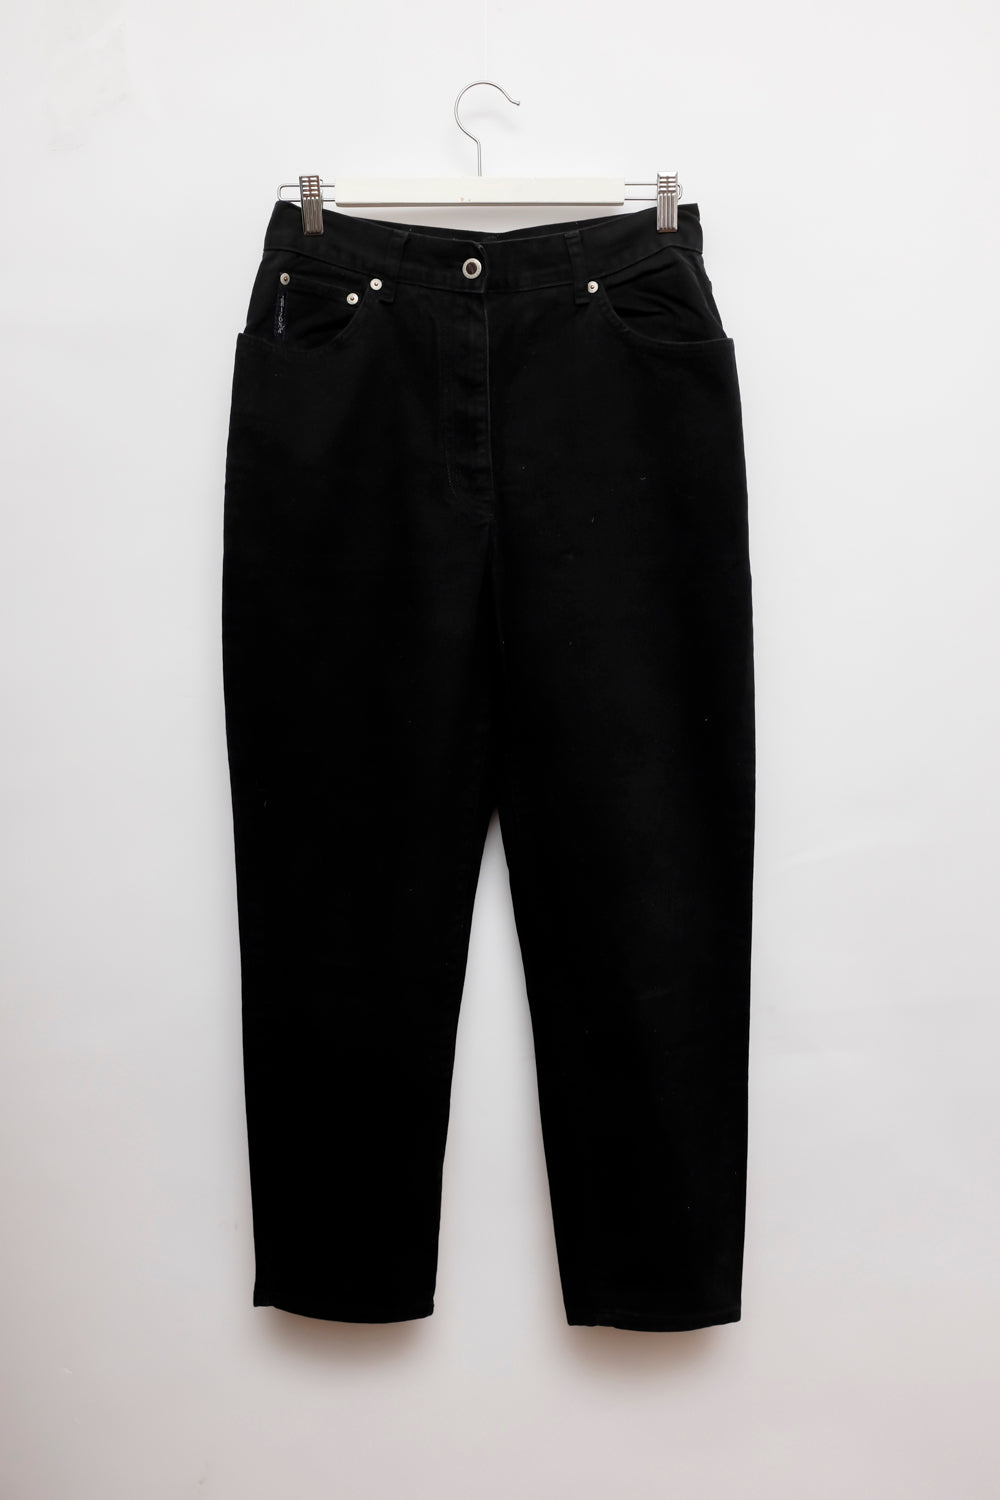 0019_BLACK HIGH WAIST CARROT JEANS